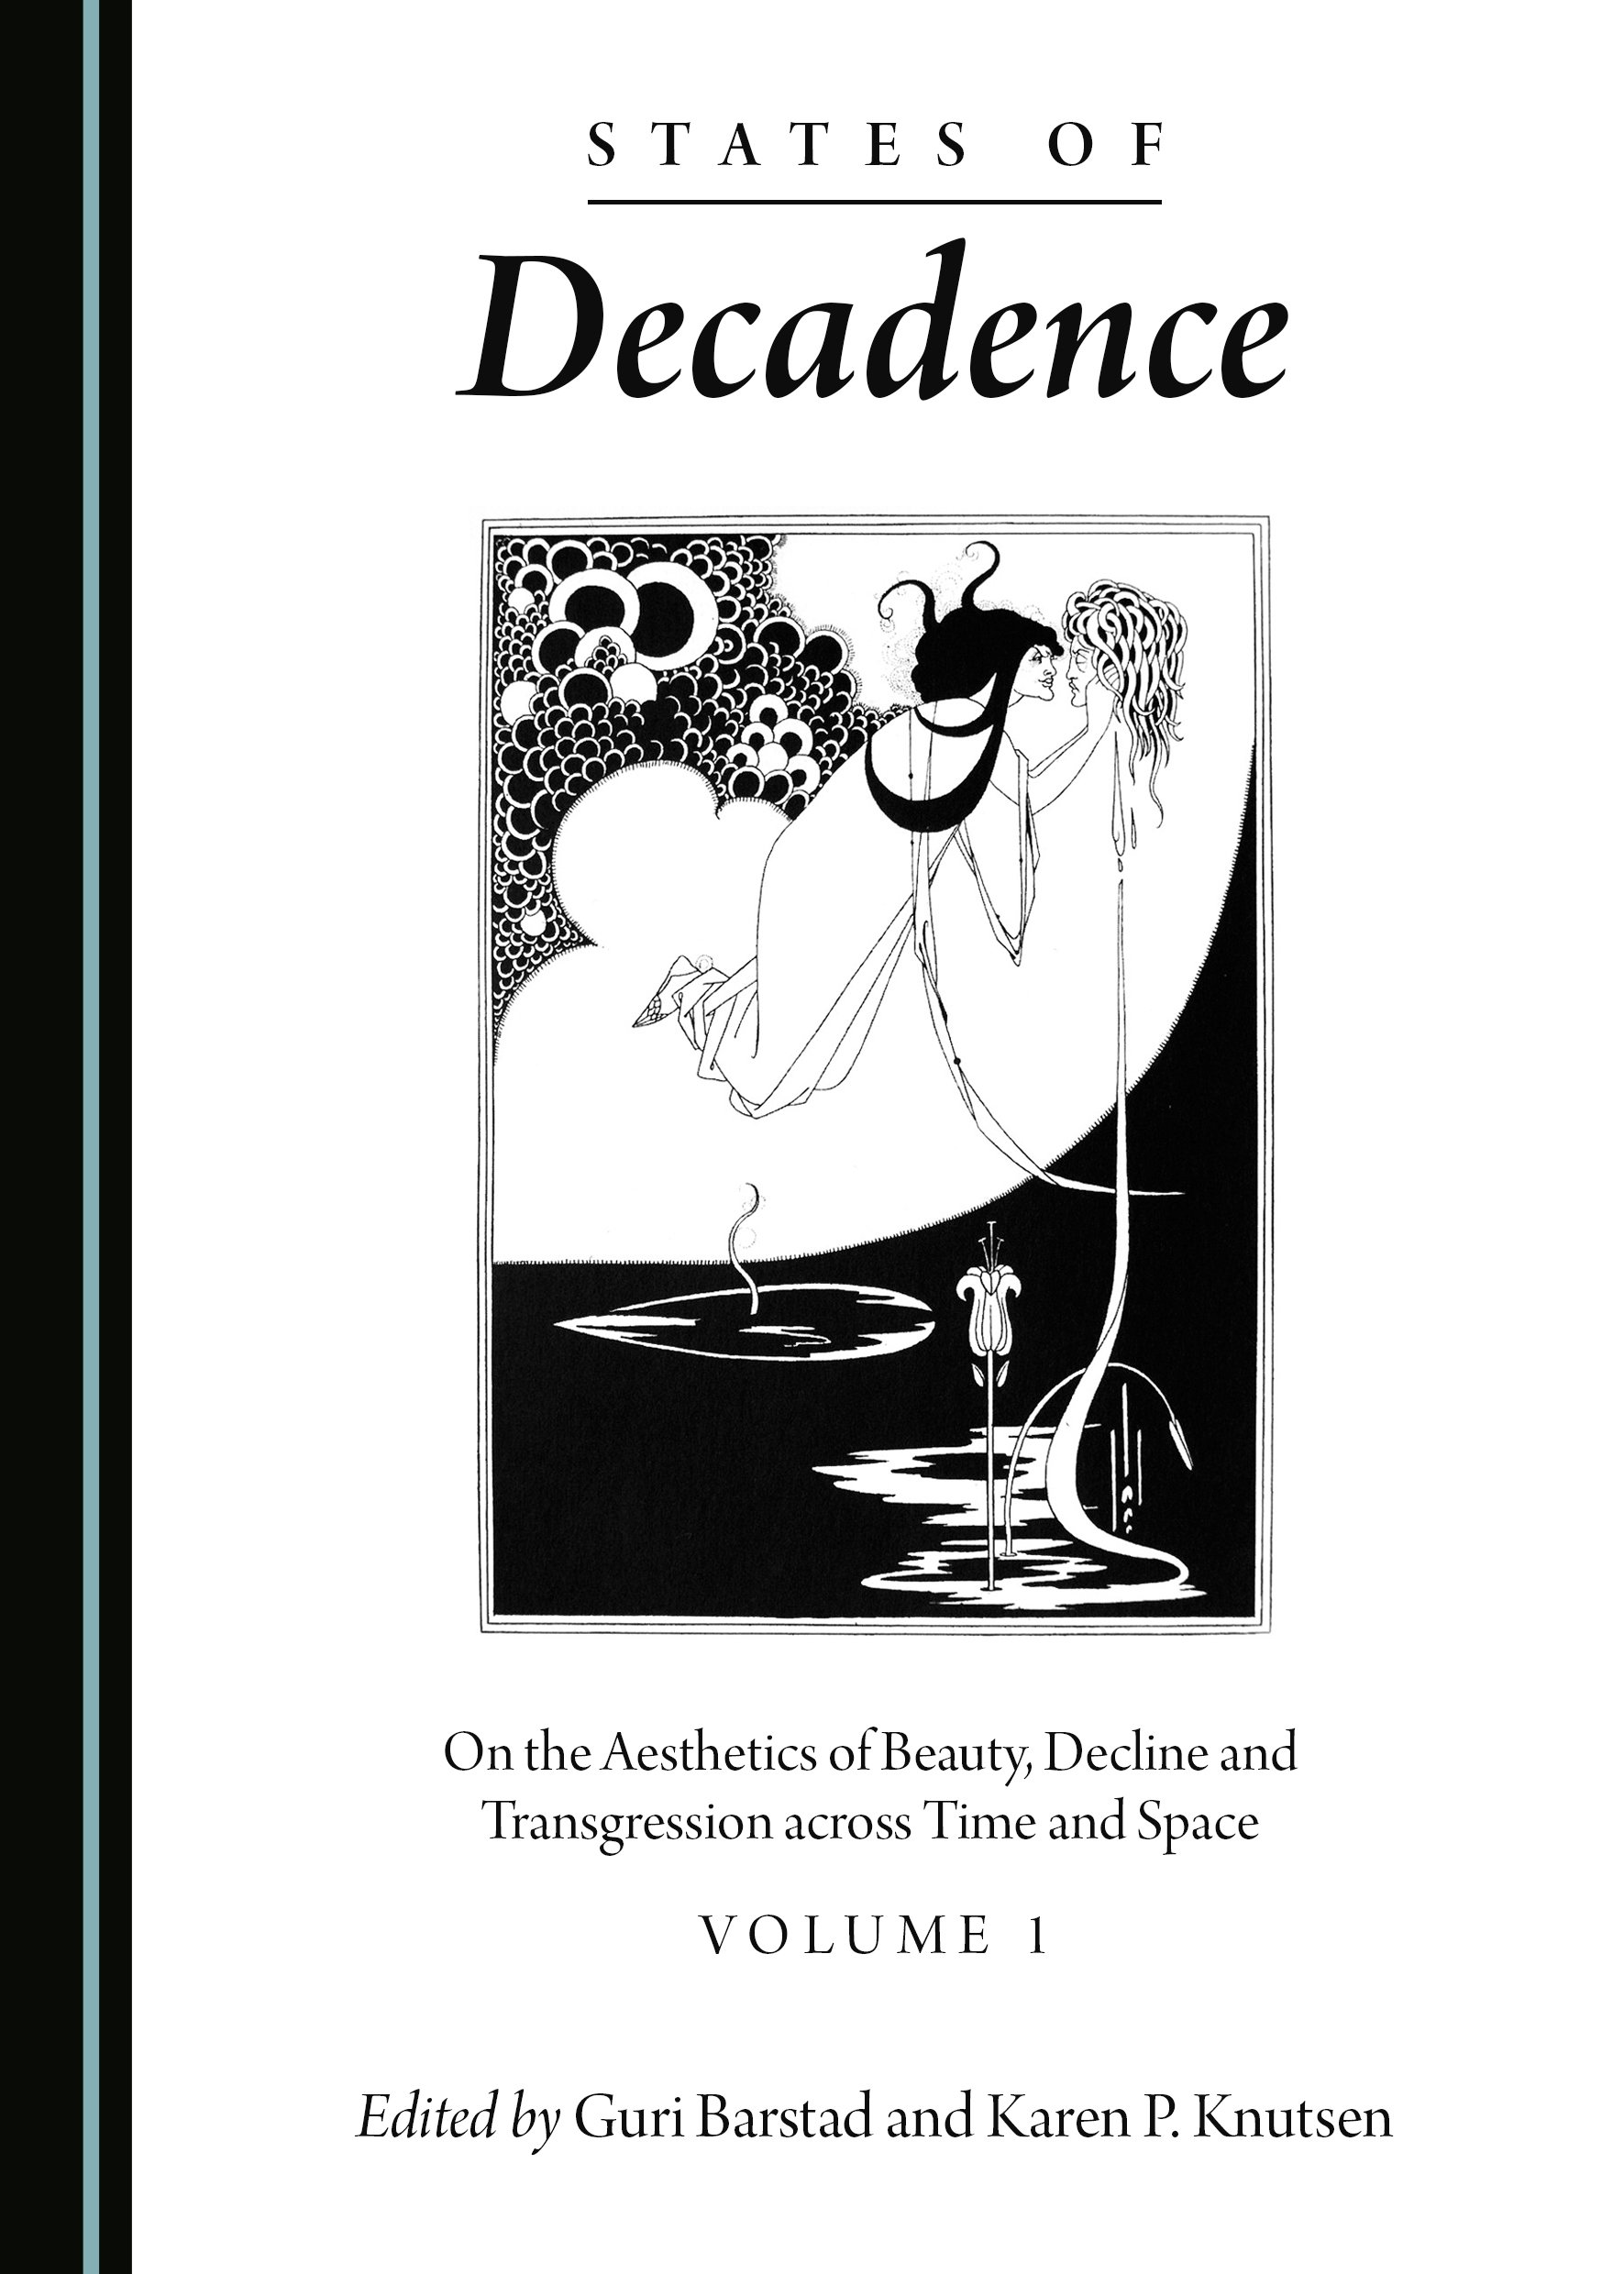 States of Decadence: On the Aesthetics of Beauty, Decline and Transgression across Time and Space Volume 1